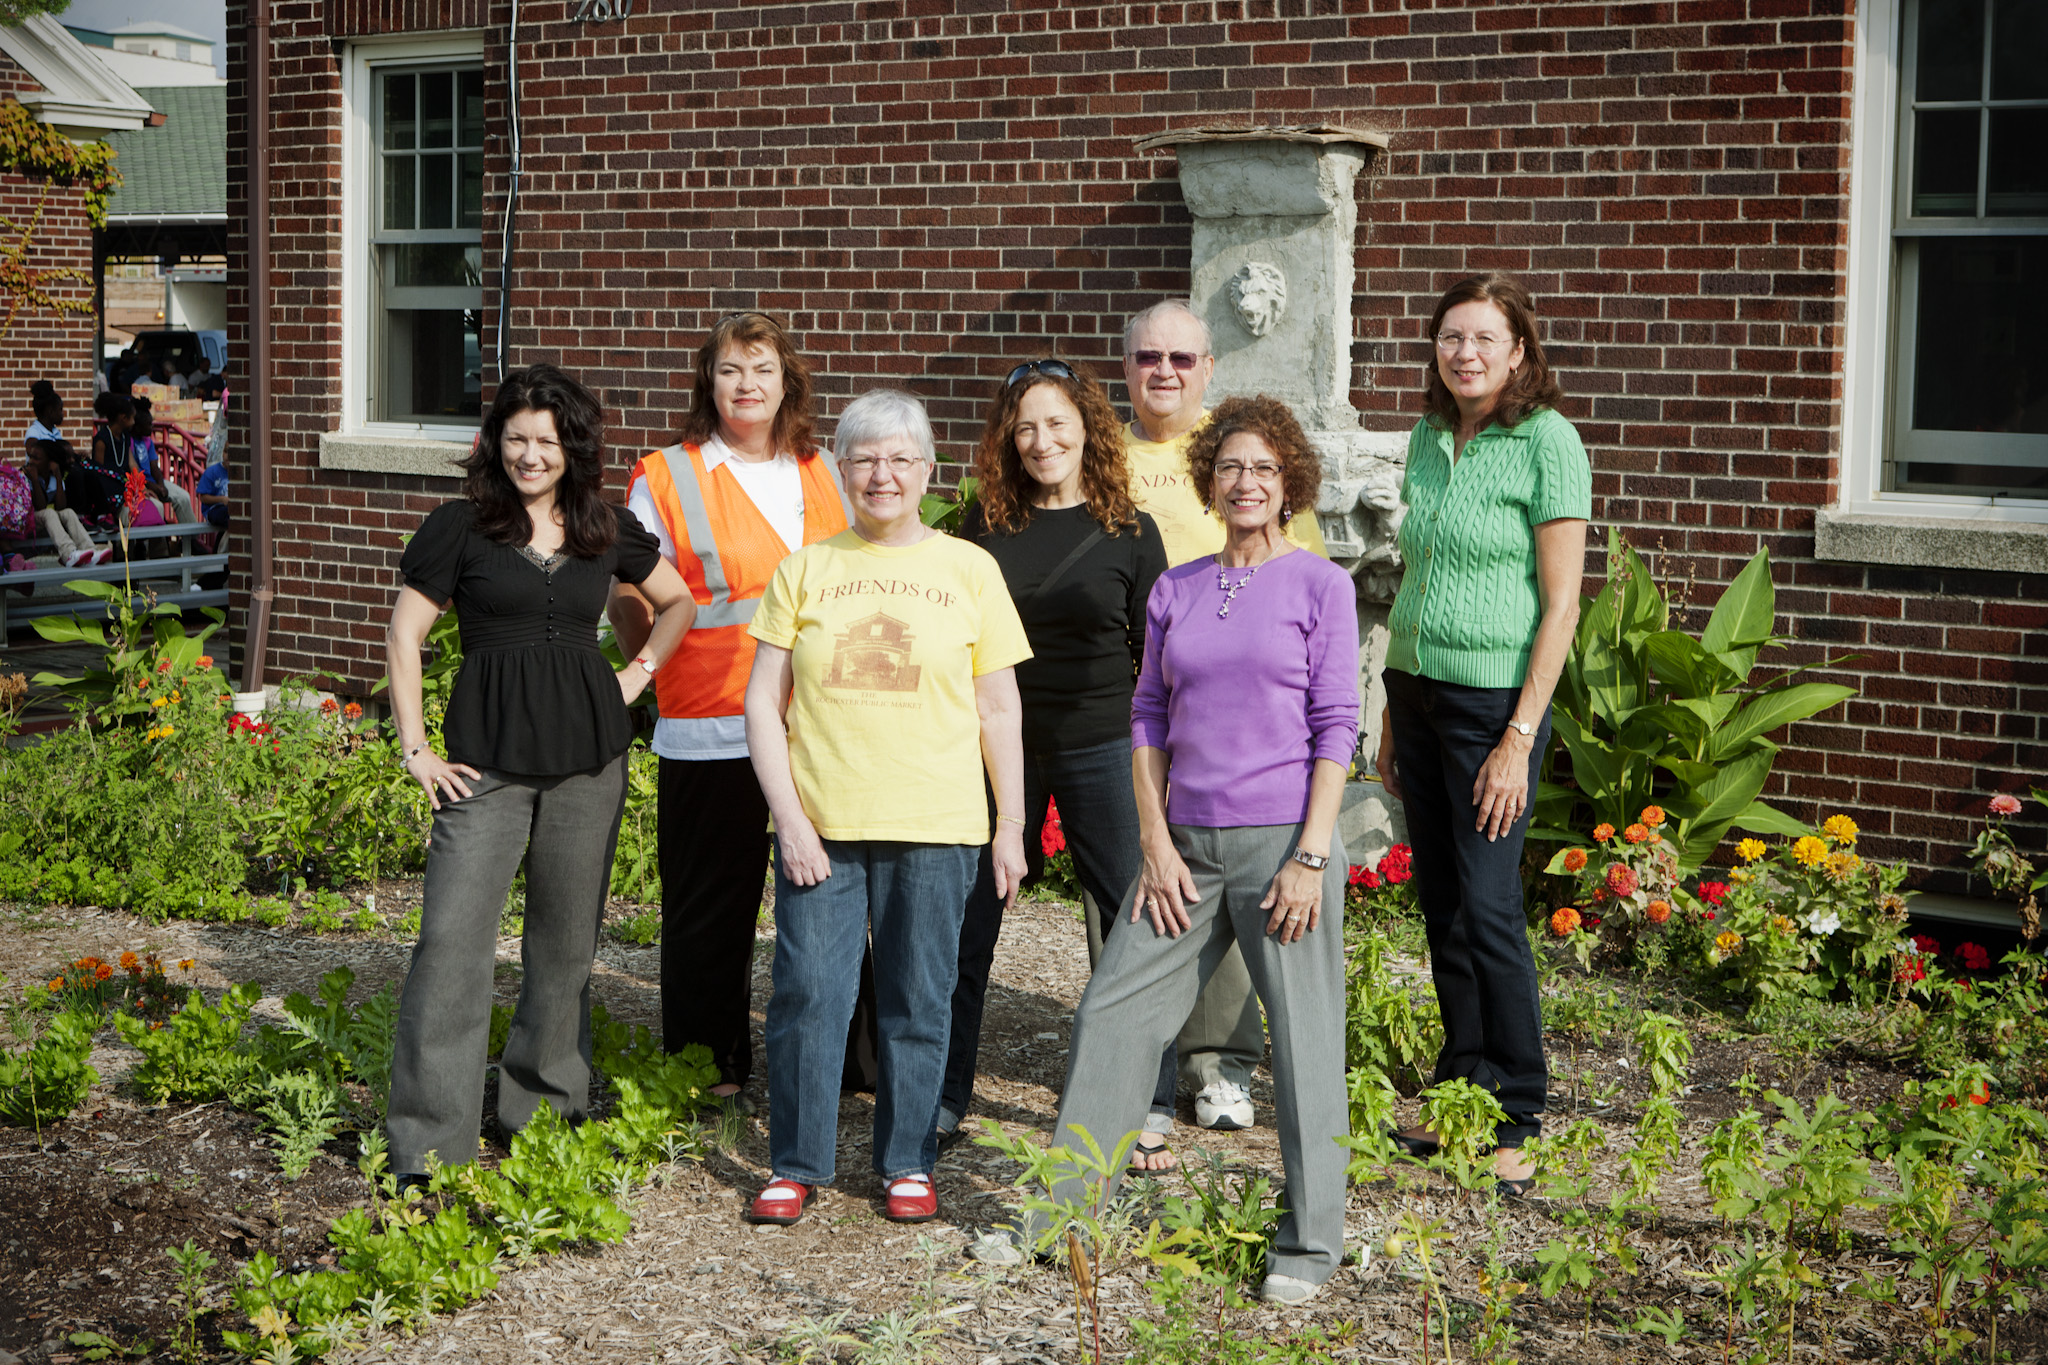 the friends mission - The Friends of the Rochester Public Market is a 501(c)3 all-volunteer-based non-profit organization. We partner with the The City of Rochester to advocate for and support a vibrant and successful Market, through results-driven programs and services that benefit and support farmers, vendors, shoppers and the Greater Rochester community.